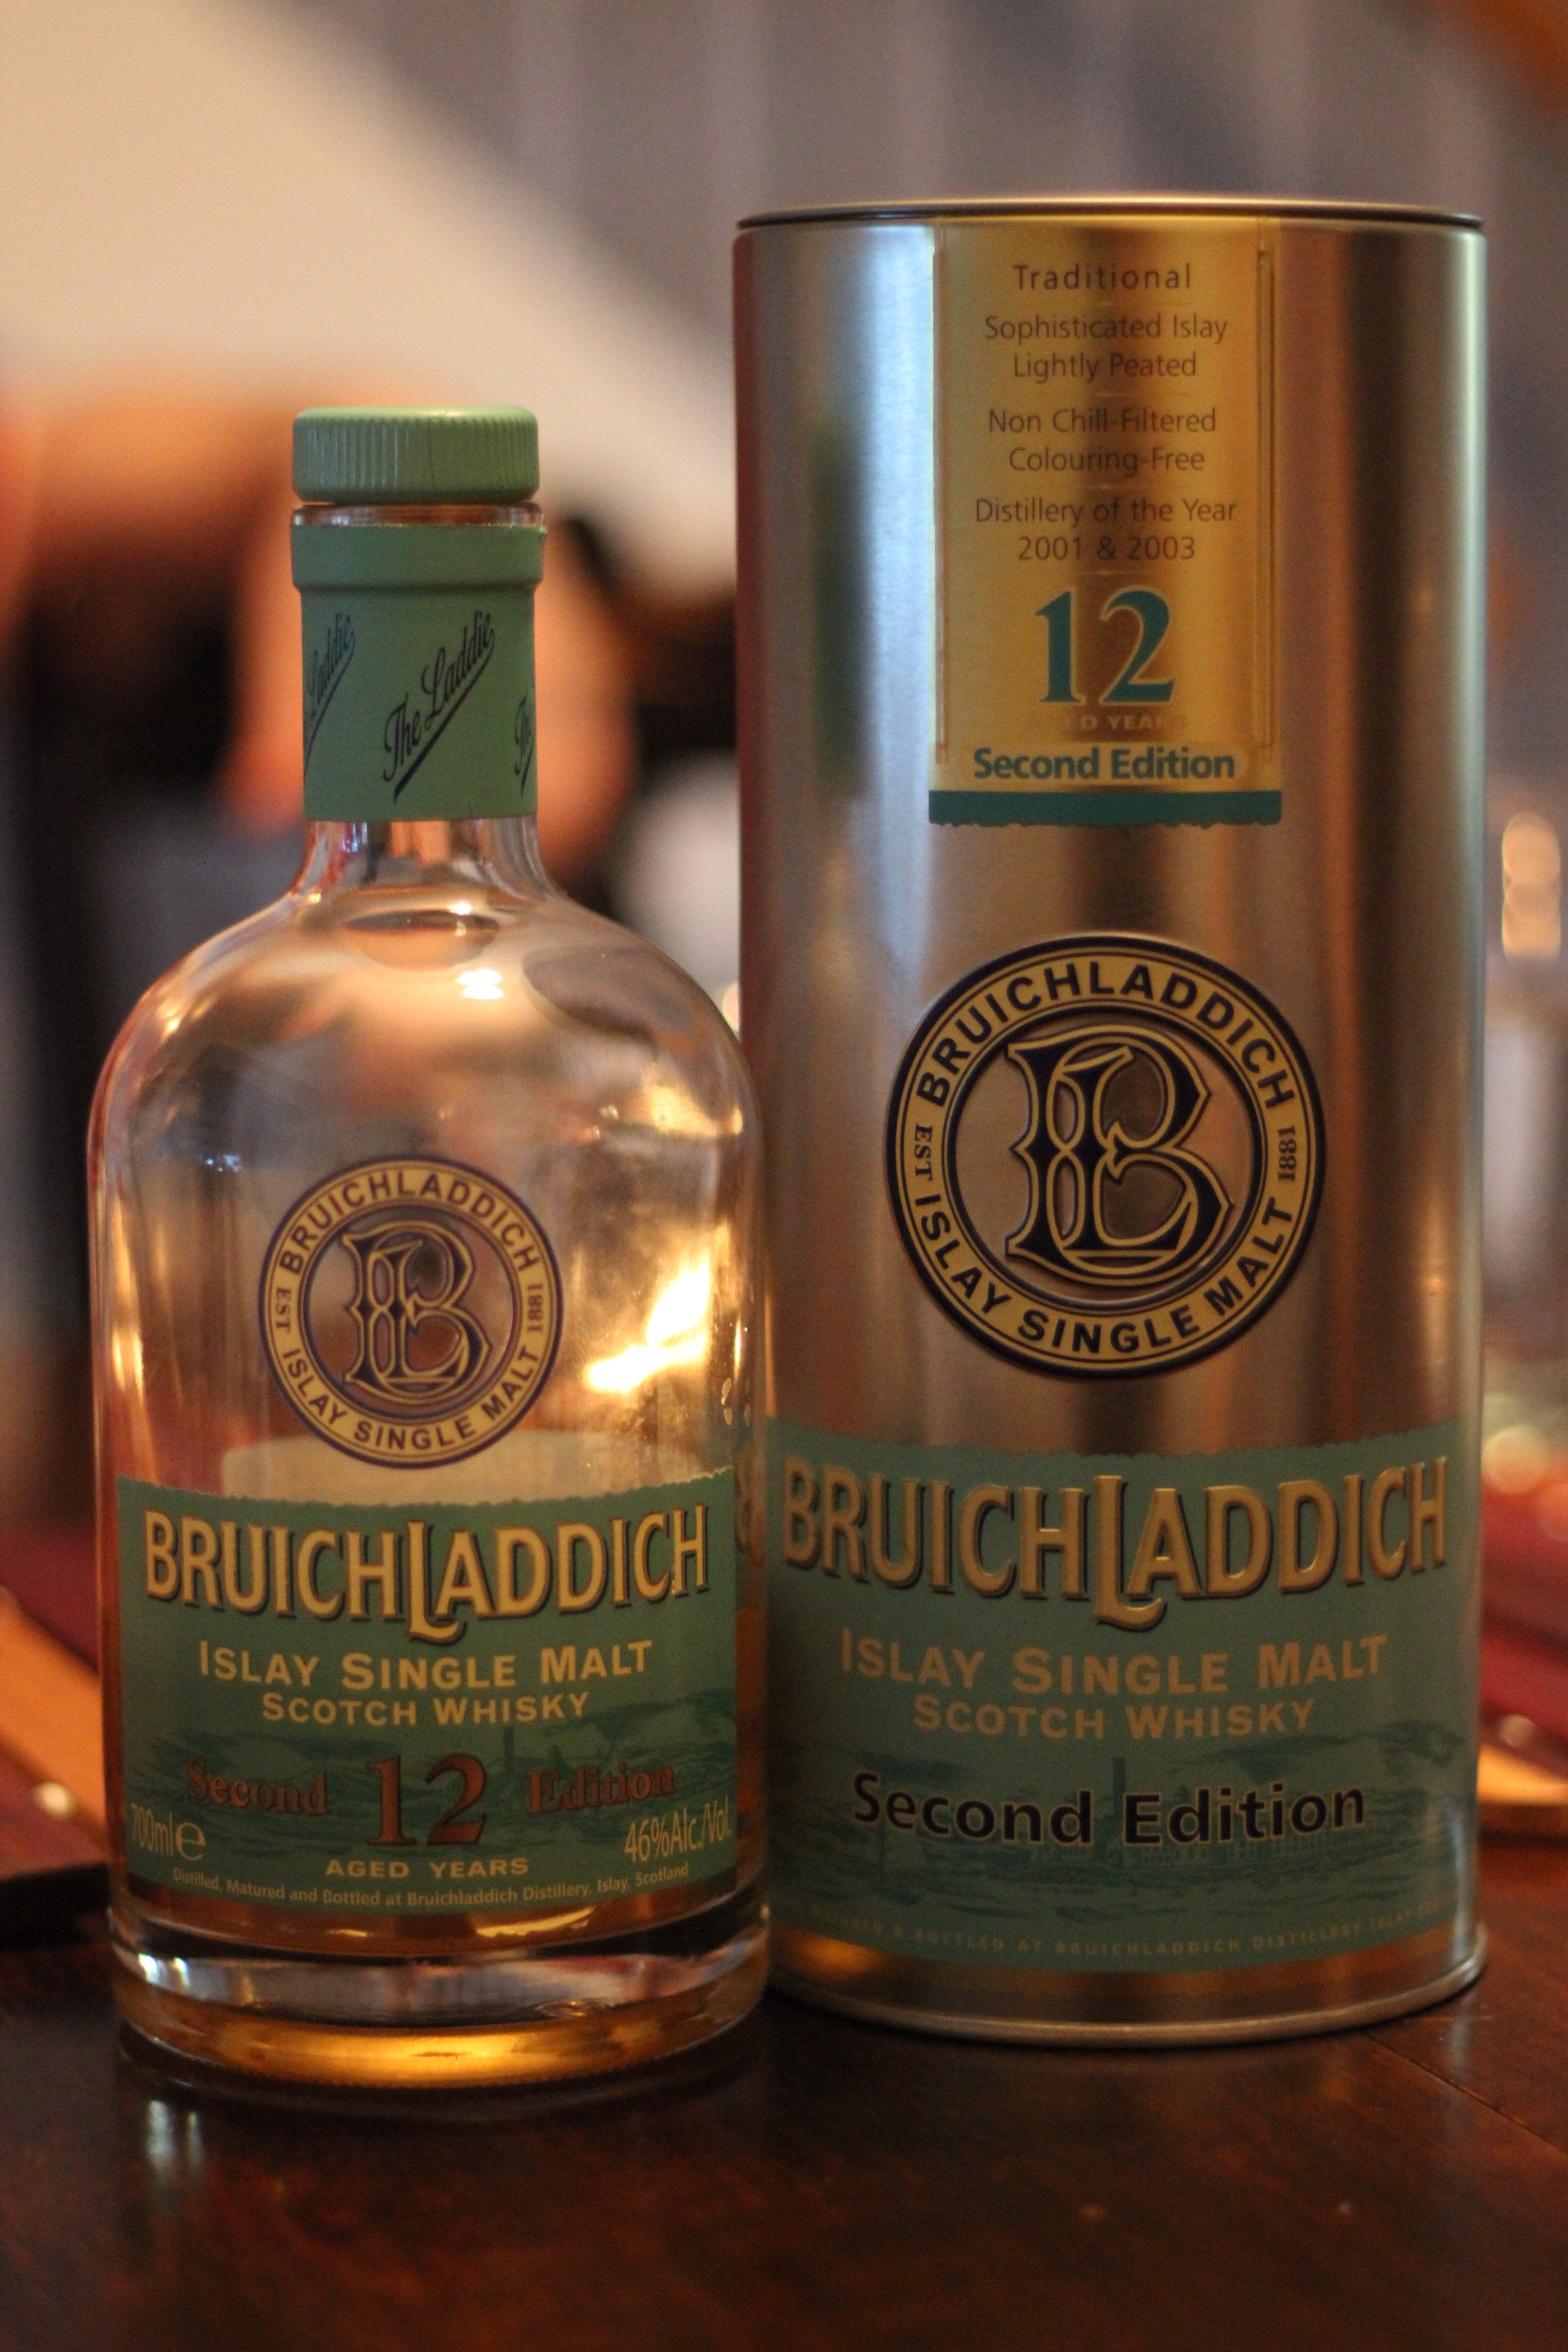 Bruichladdich 12y 2nd Edition